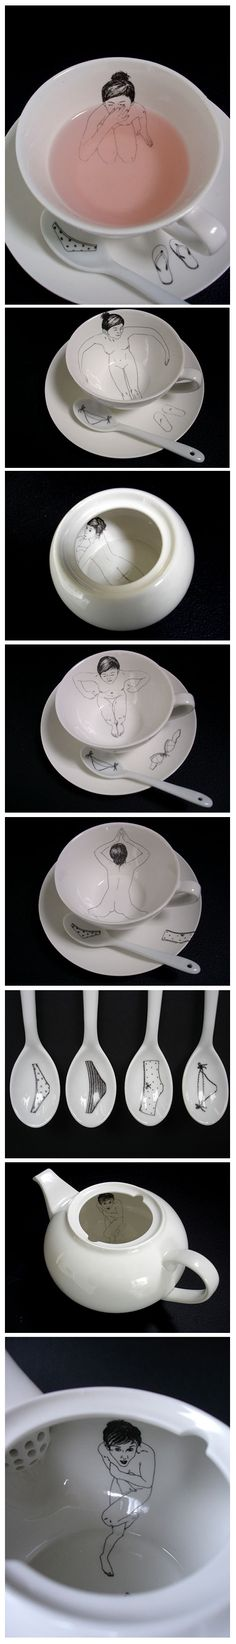 Bathing Girls Tea Set, by Esther Horchner.